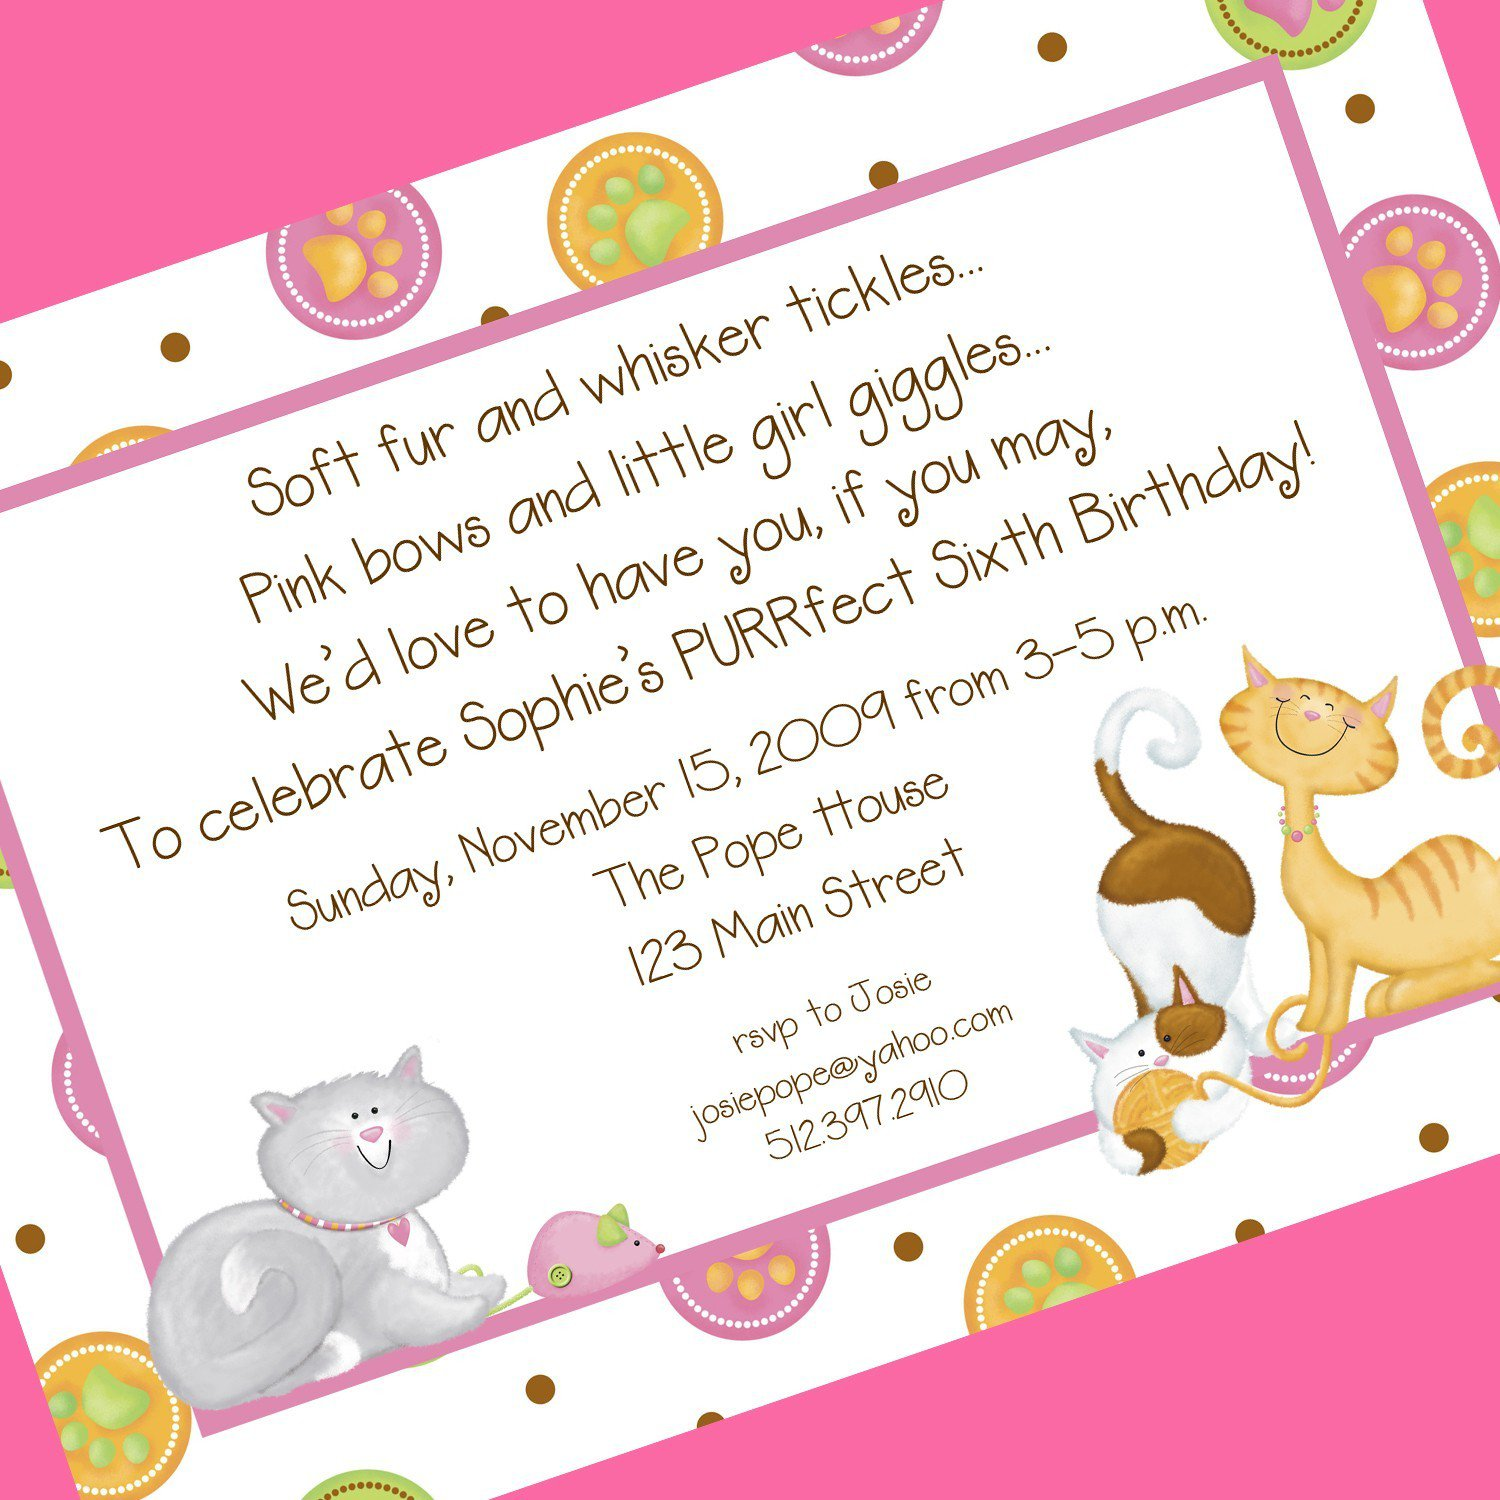 Invitation Quotes For 6th Birthday Party - Life Style By ...